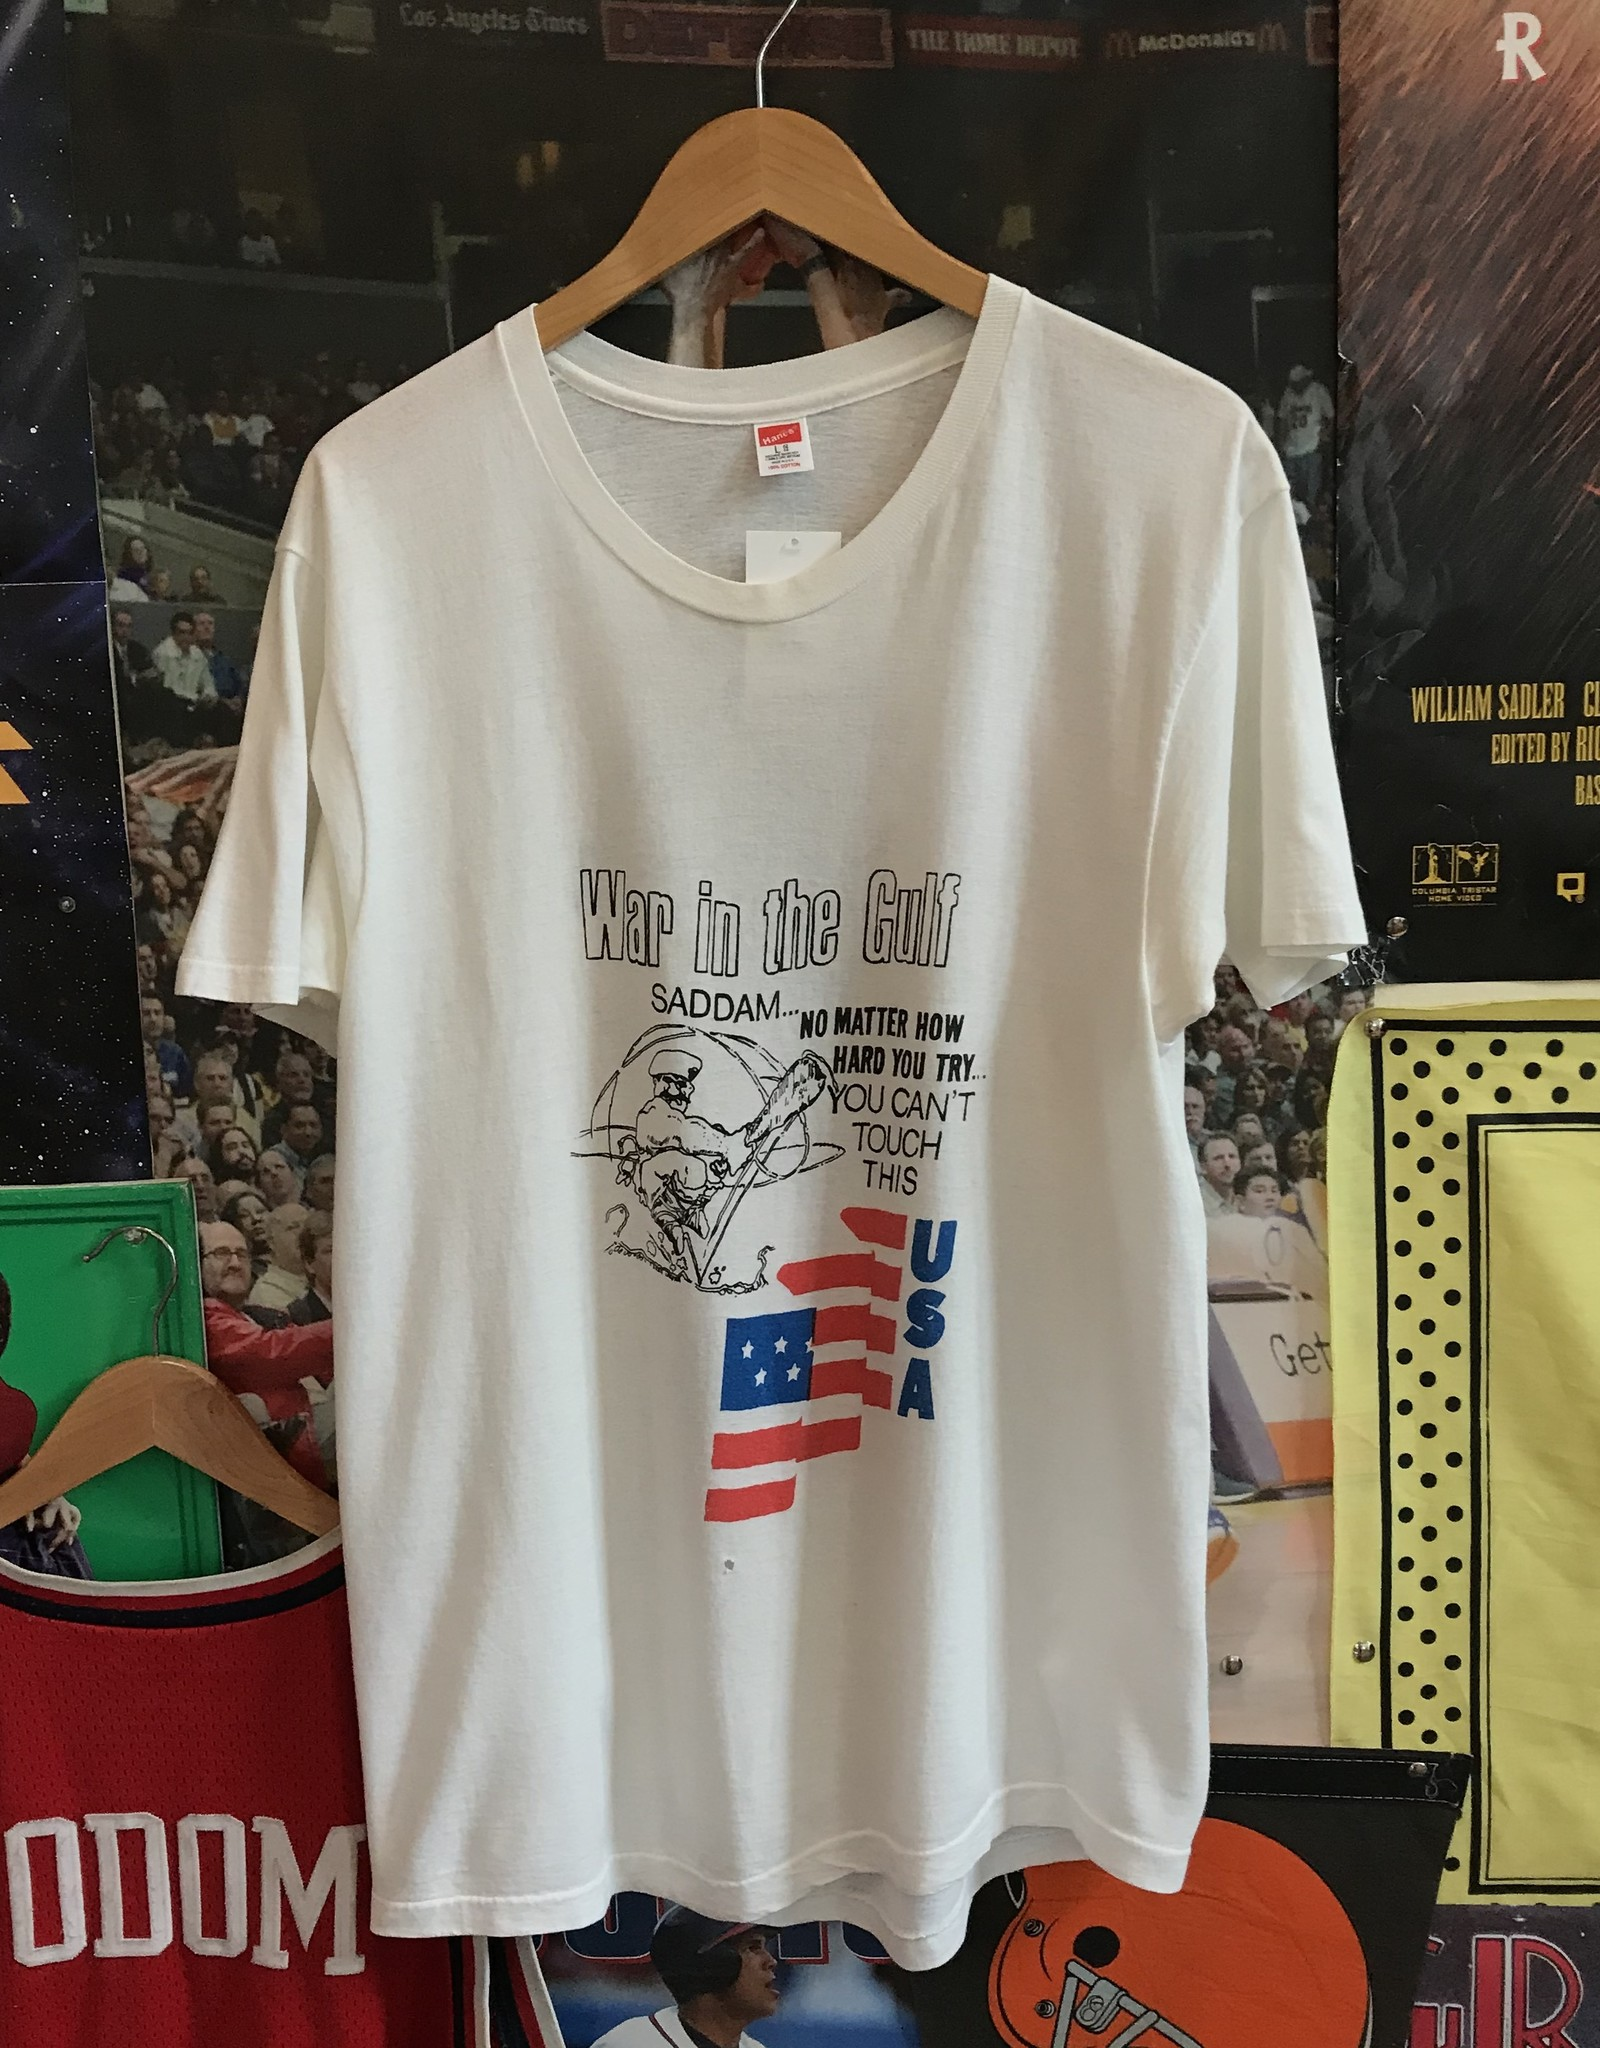 33211991 war with the gulf tee white sz L